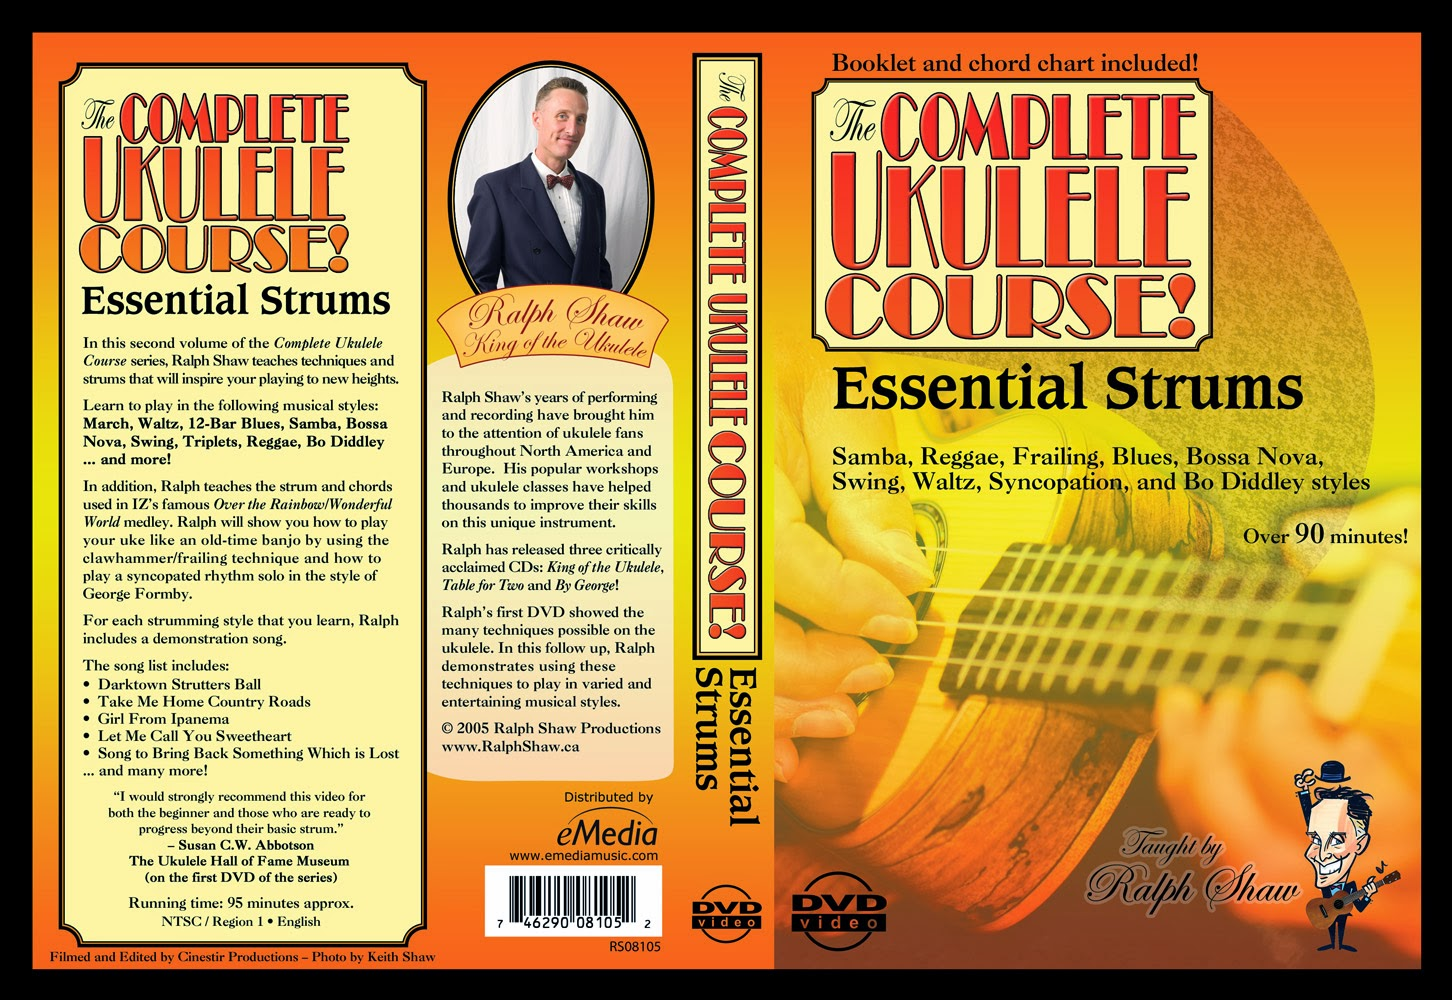 Essential Strums for the Ukulele on DVD